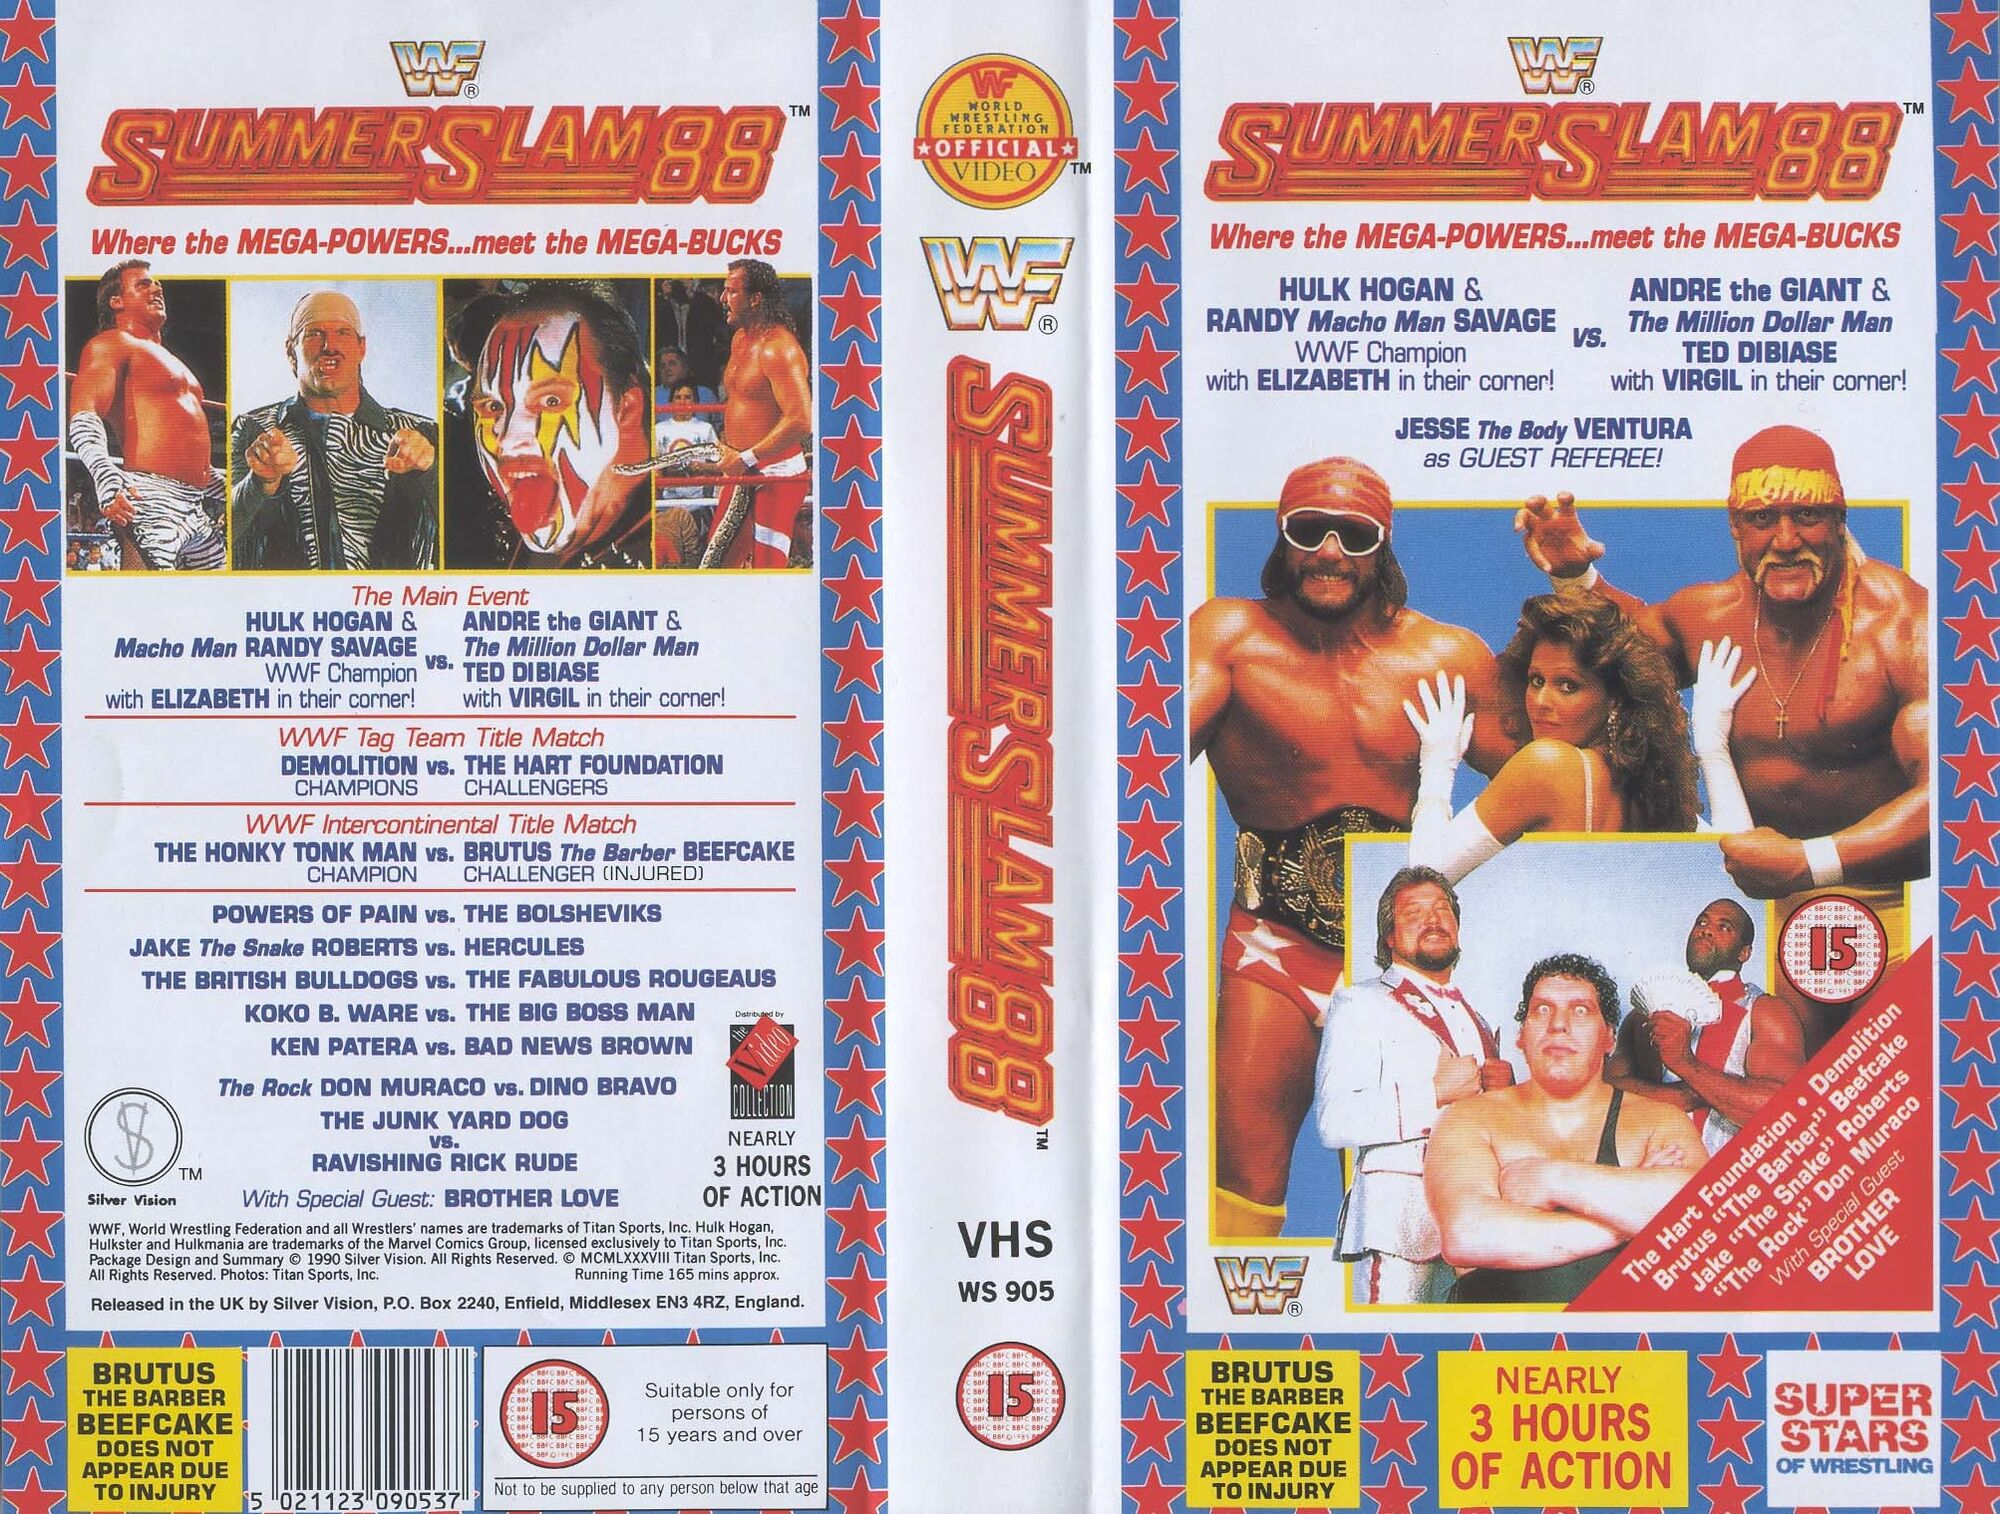 WWF Summerslam 1988 Review - YouTube